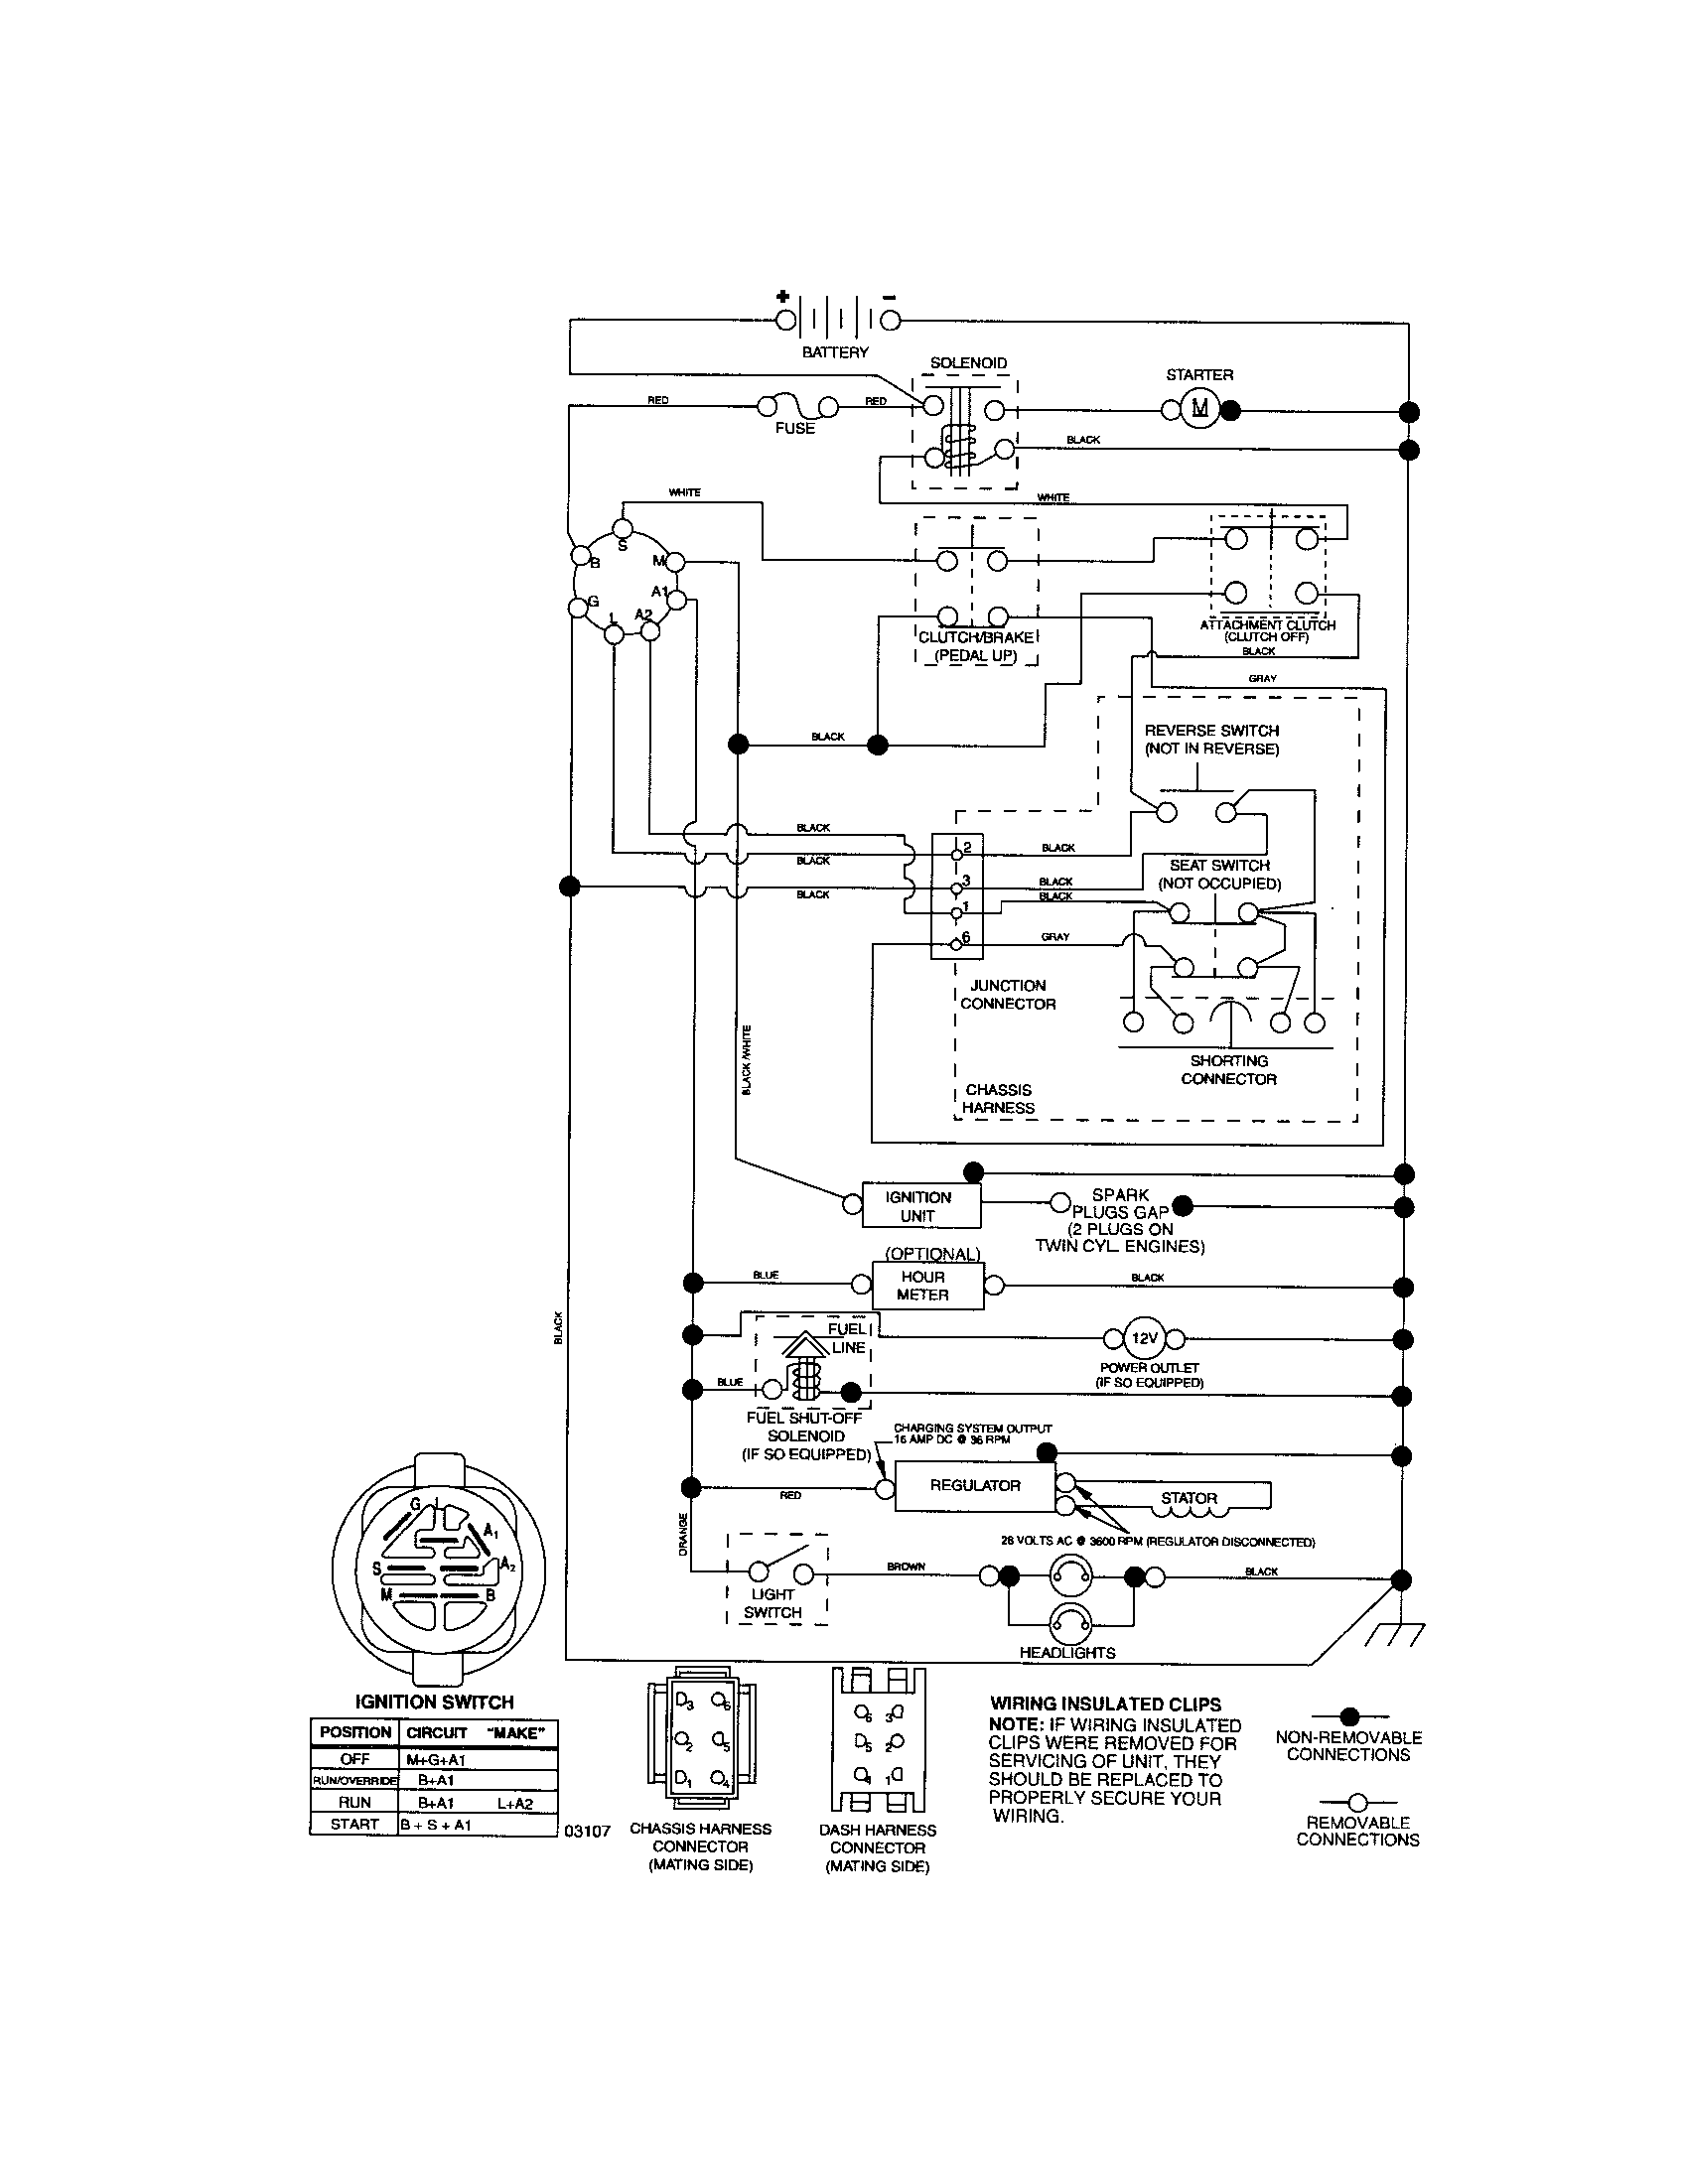 6af5f1447fd13c8443376822ddc1e105 craftsman riding mower electrical diagram wiring diagram craftsman lt1000 lawn tractor wiring diagram at eliteediting.co